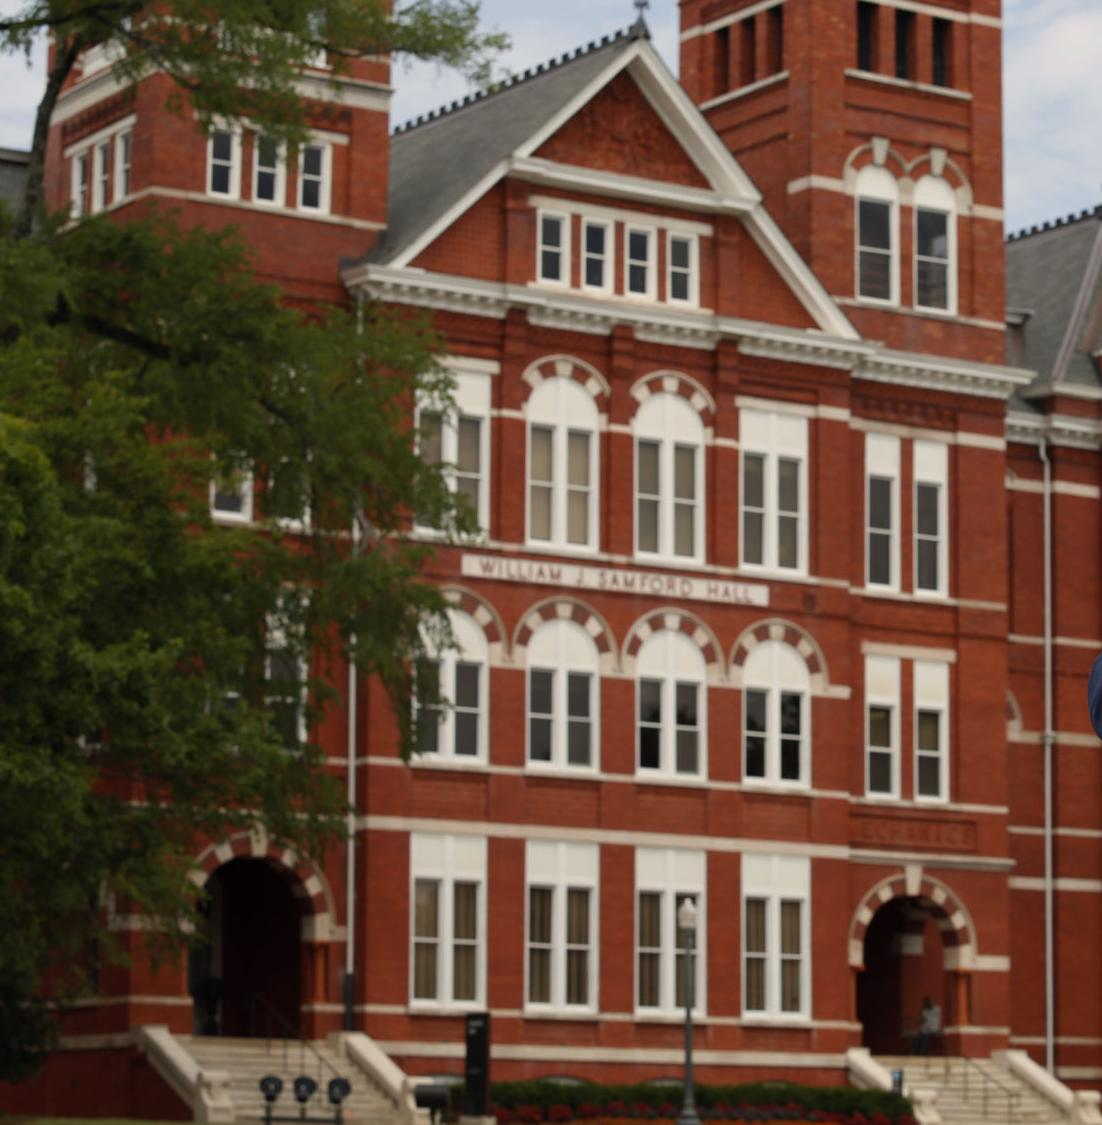 AU Presidential Search: Is decision made? Trustees ready to vote, but with less transparency